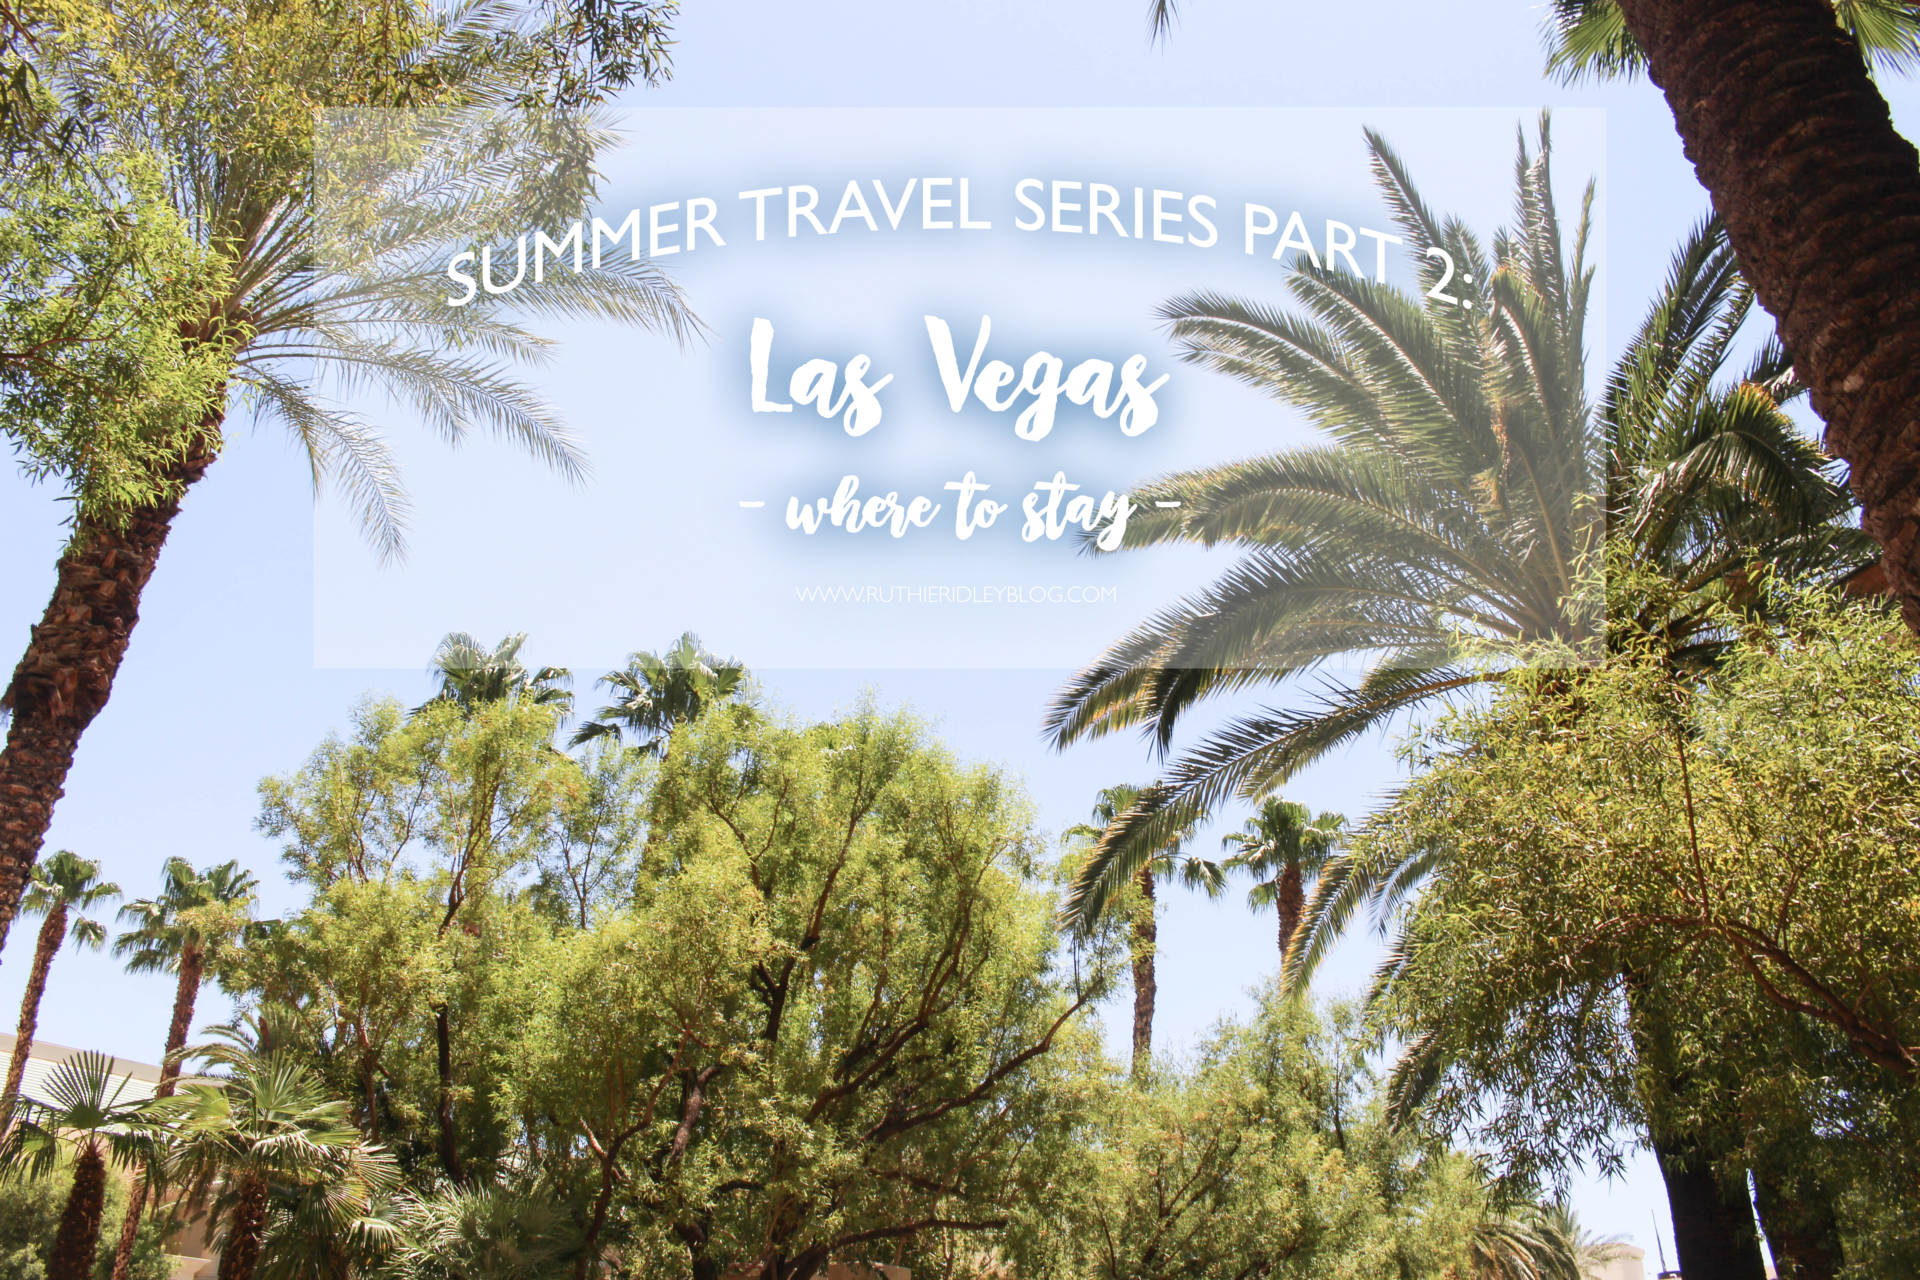 Summer Travel Series Part 2: All the details on the 2 hotels we stayed at during our trip Vegas last month!! Where you should stay and why!